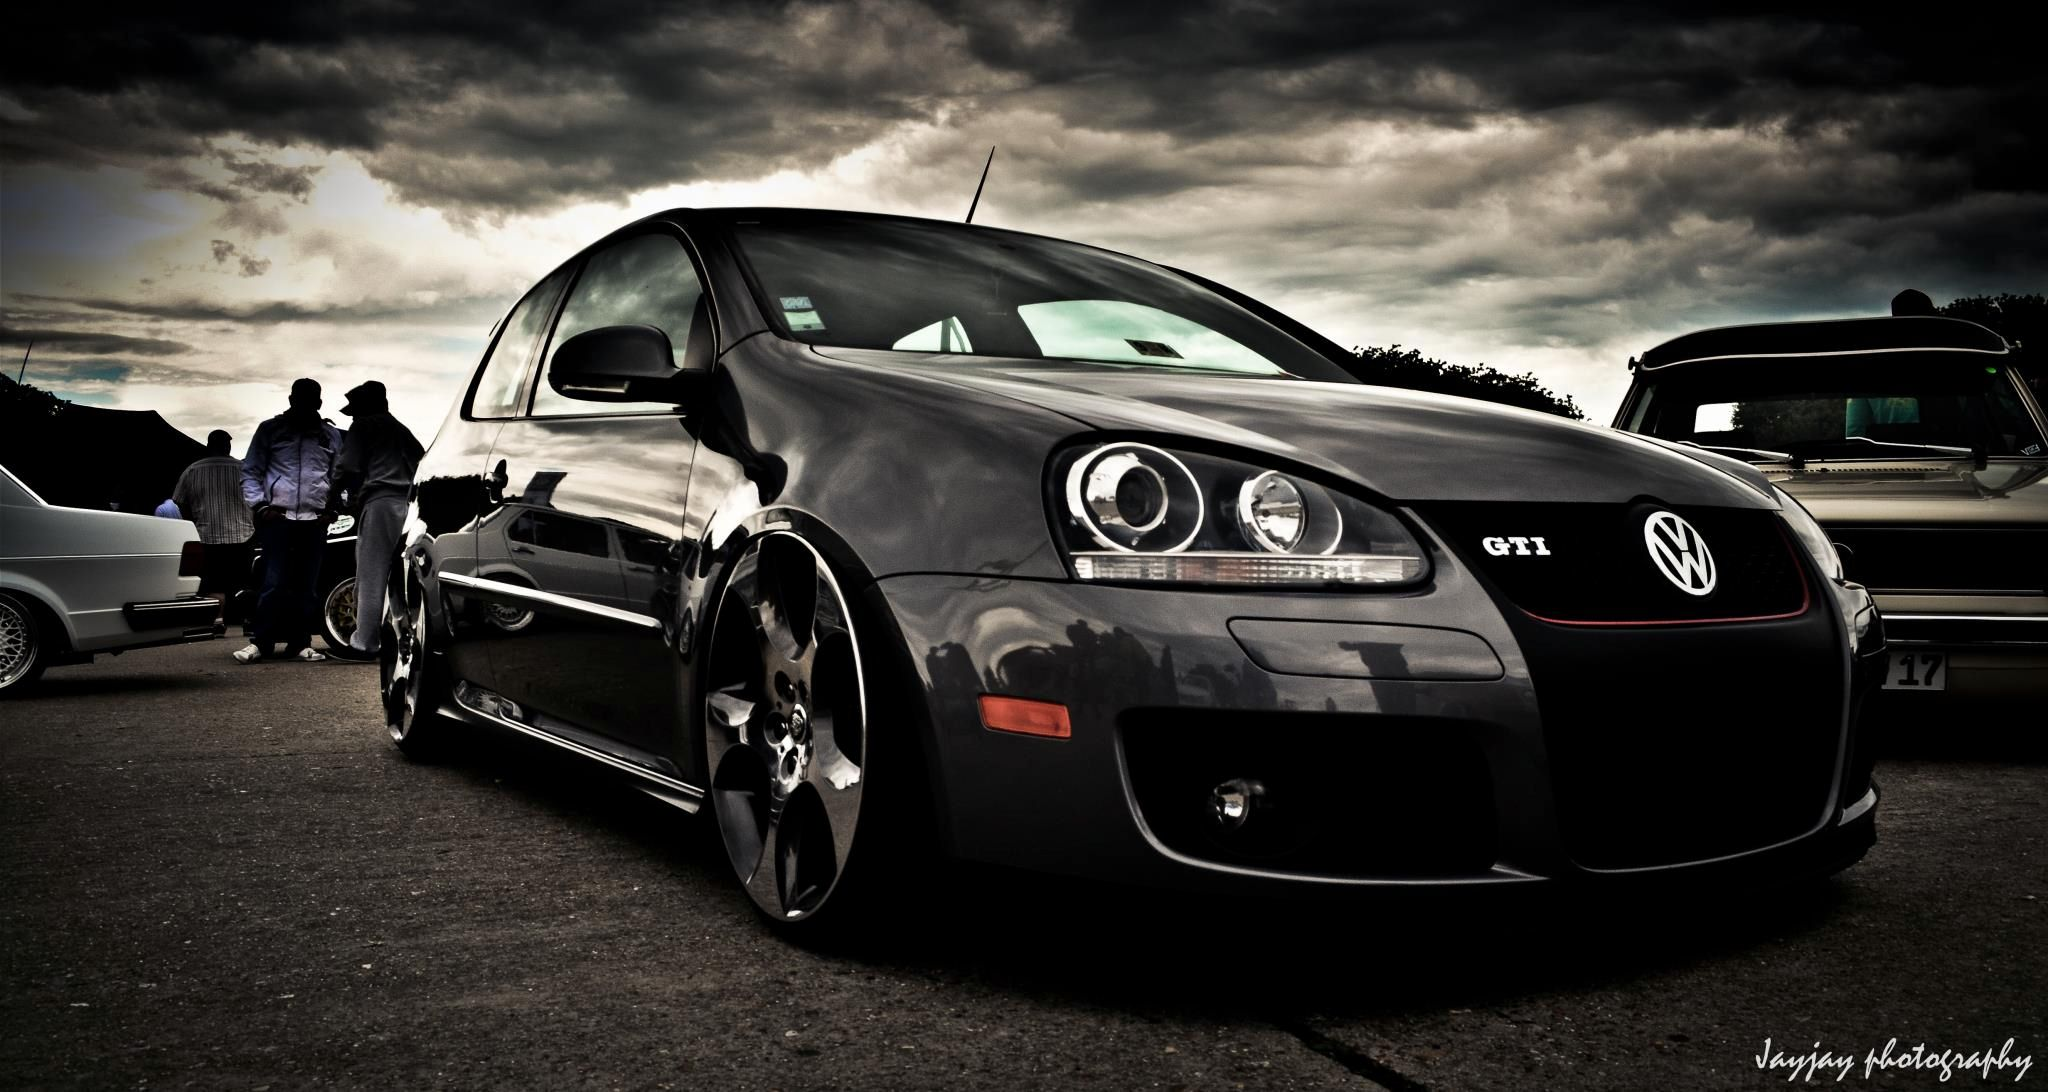 Download Golf Mk5 Wallpaper Gallery